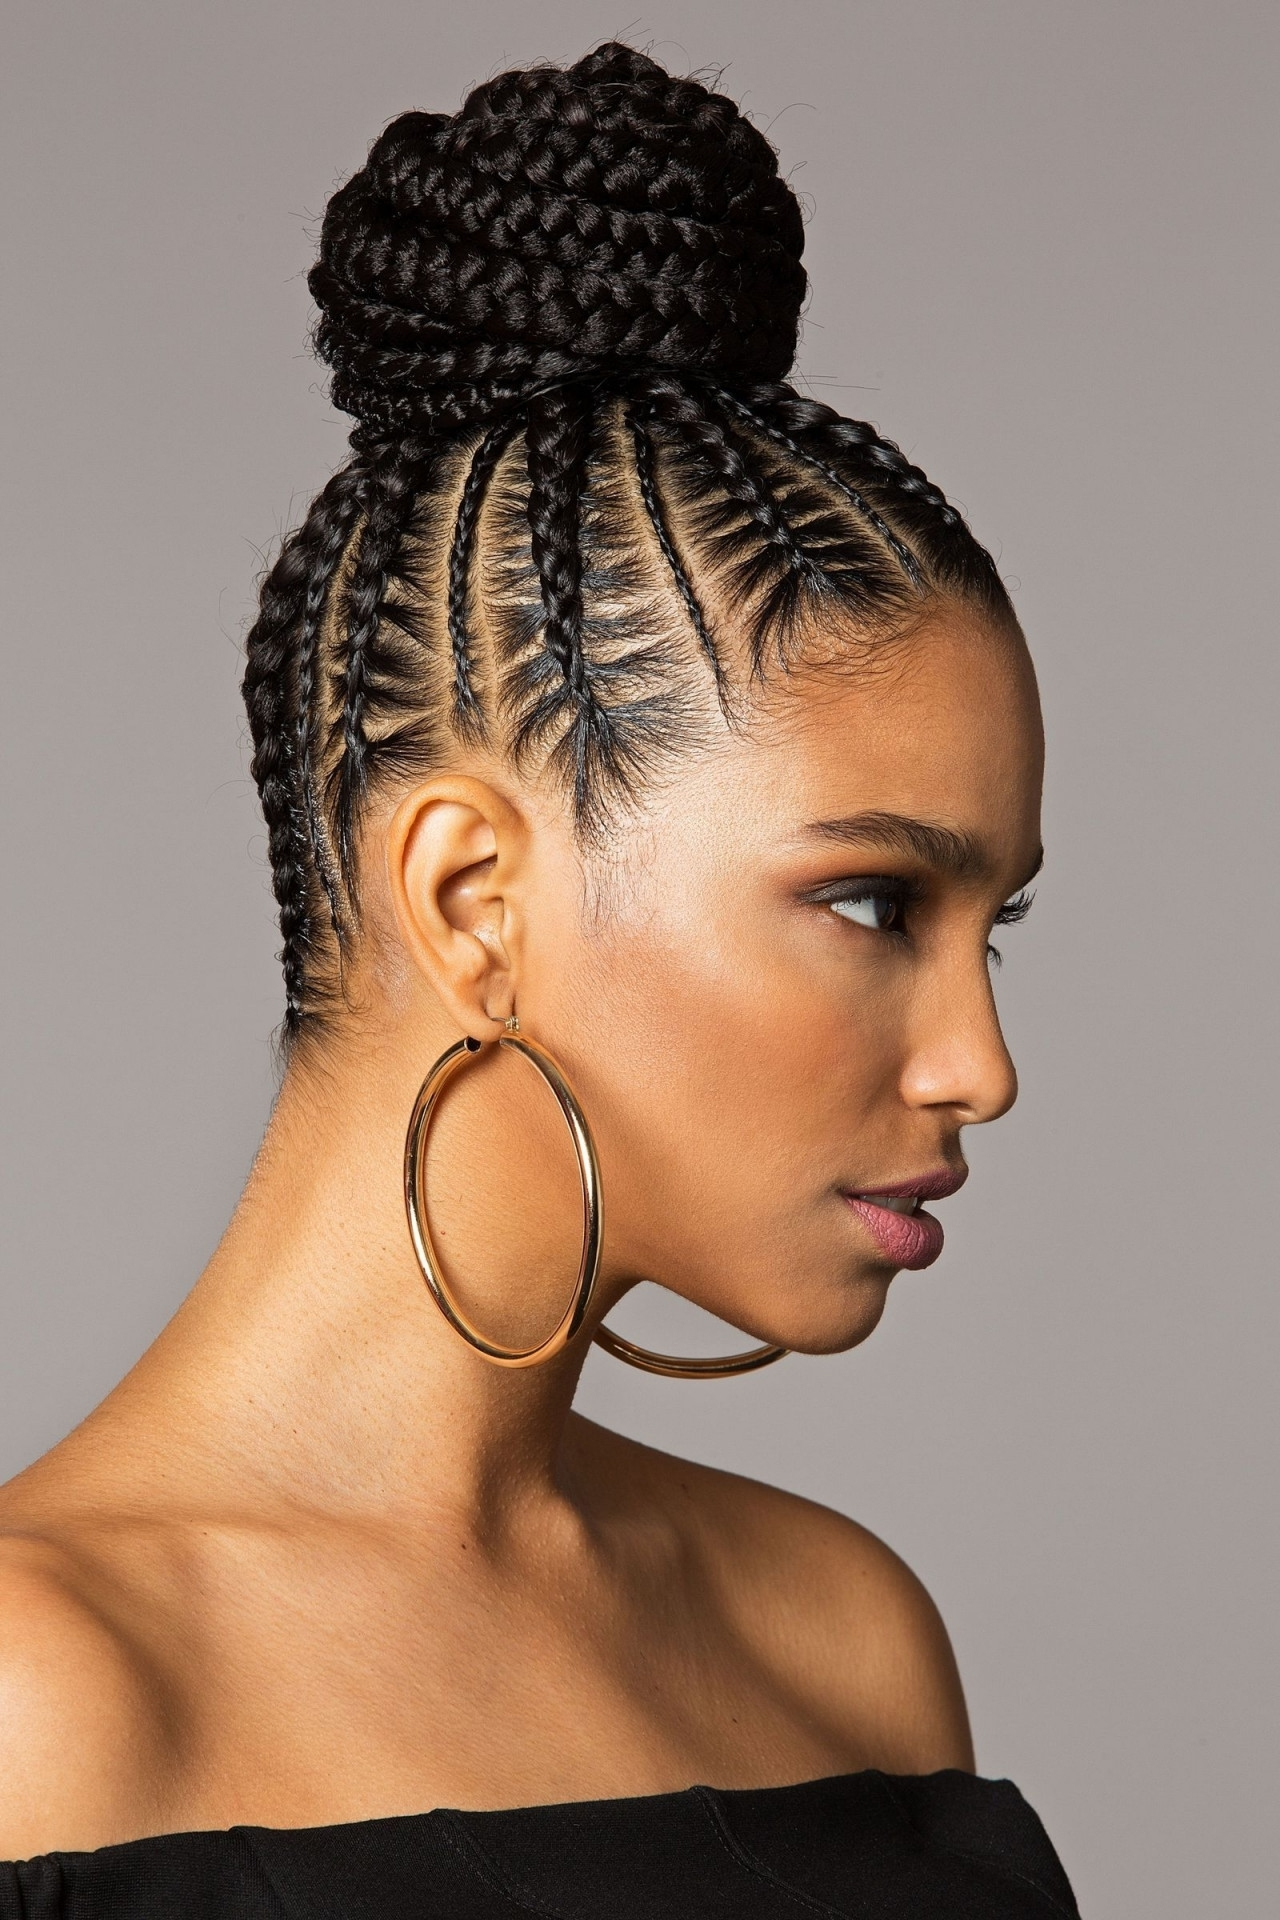 Updo Braid Hairstyles For Black Women Over 50 Fresh You Re Going To Regarding Fashionable Braided Hairstyles For Women Over (View 2 of 15)